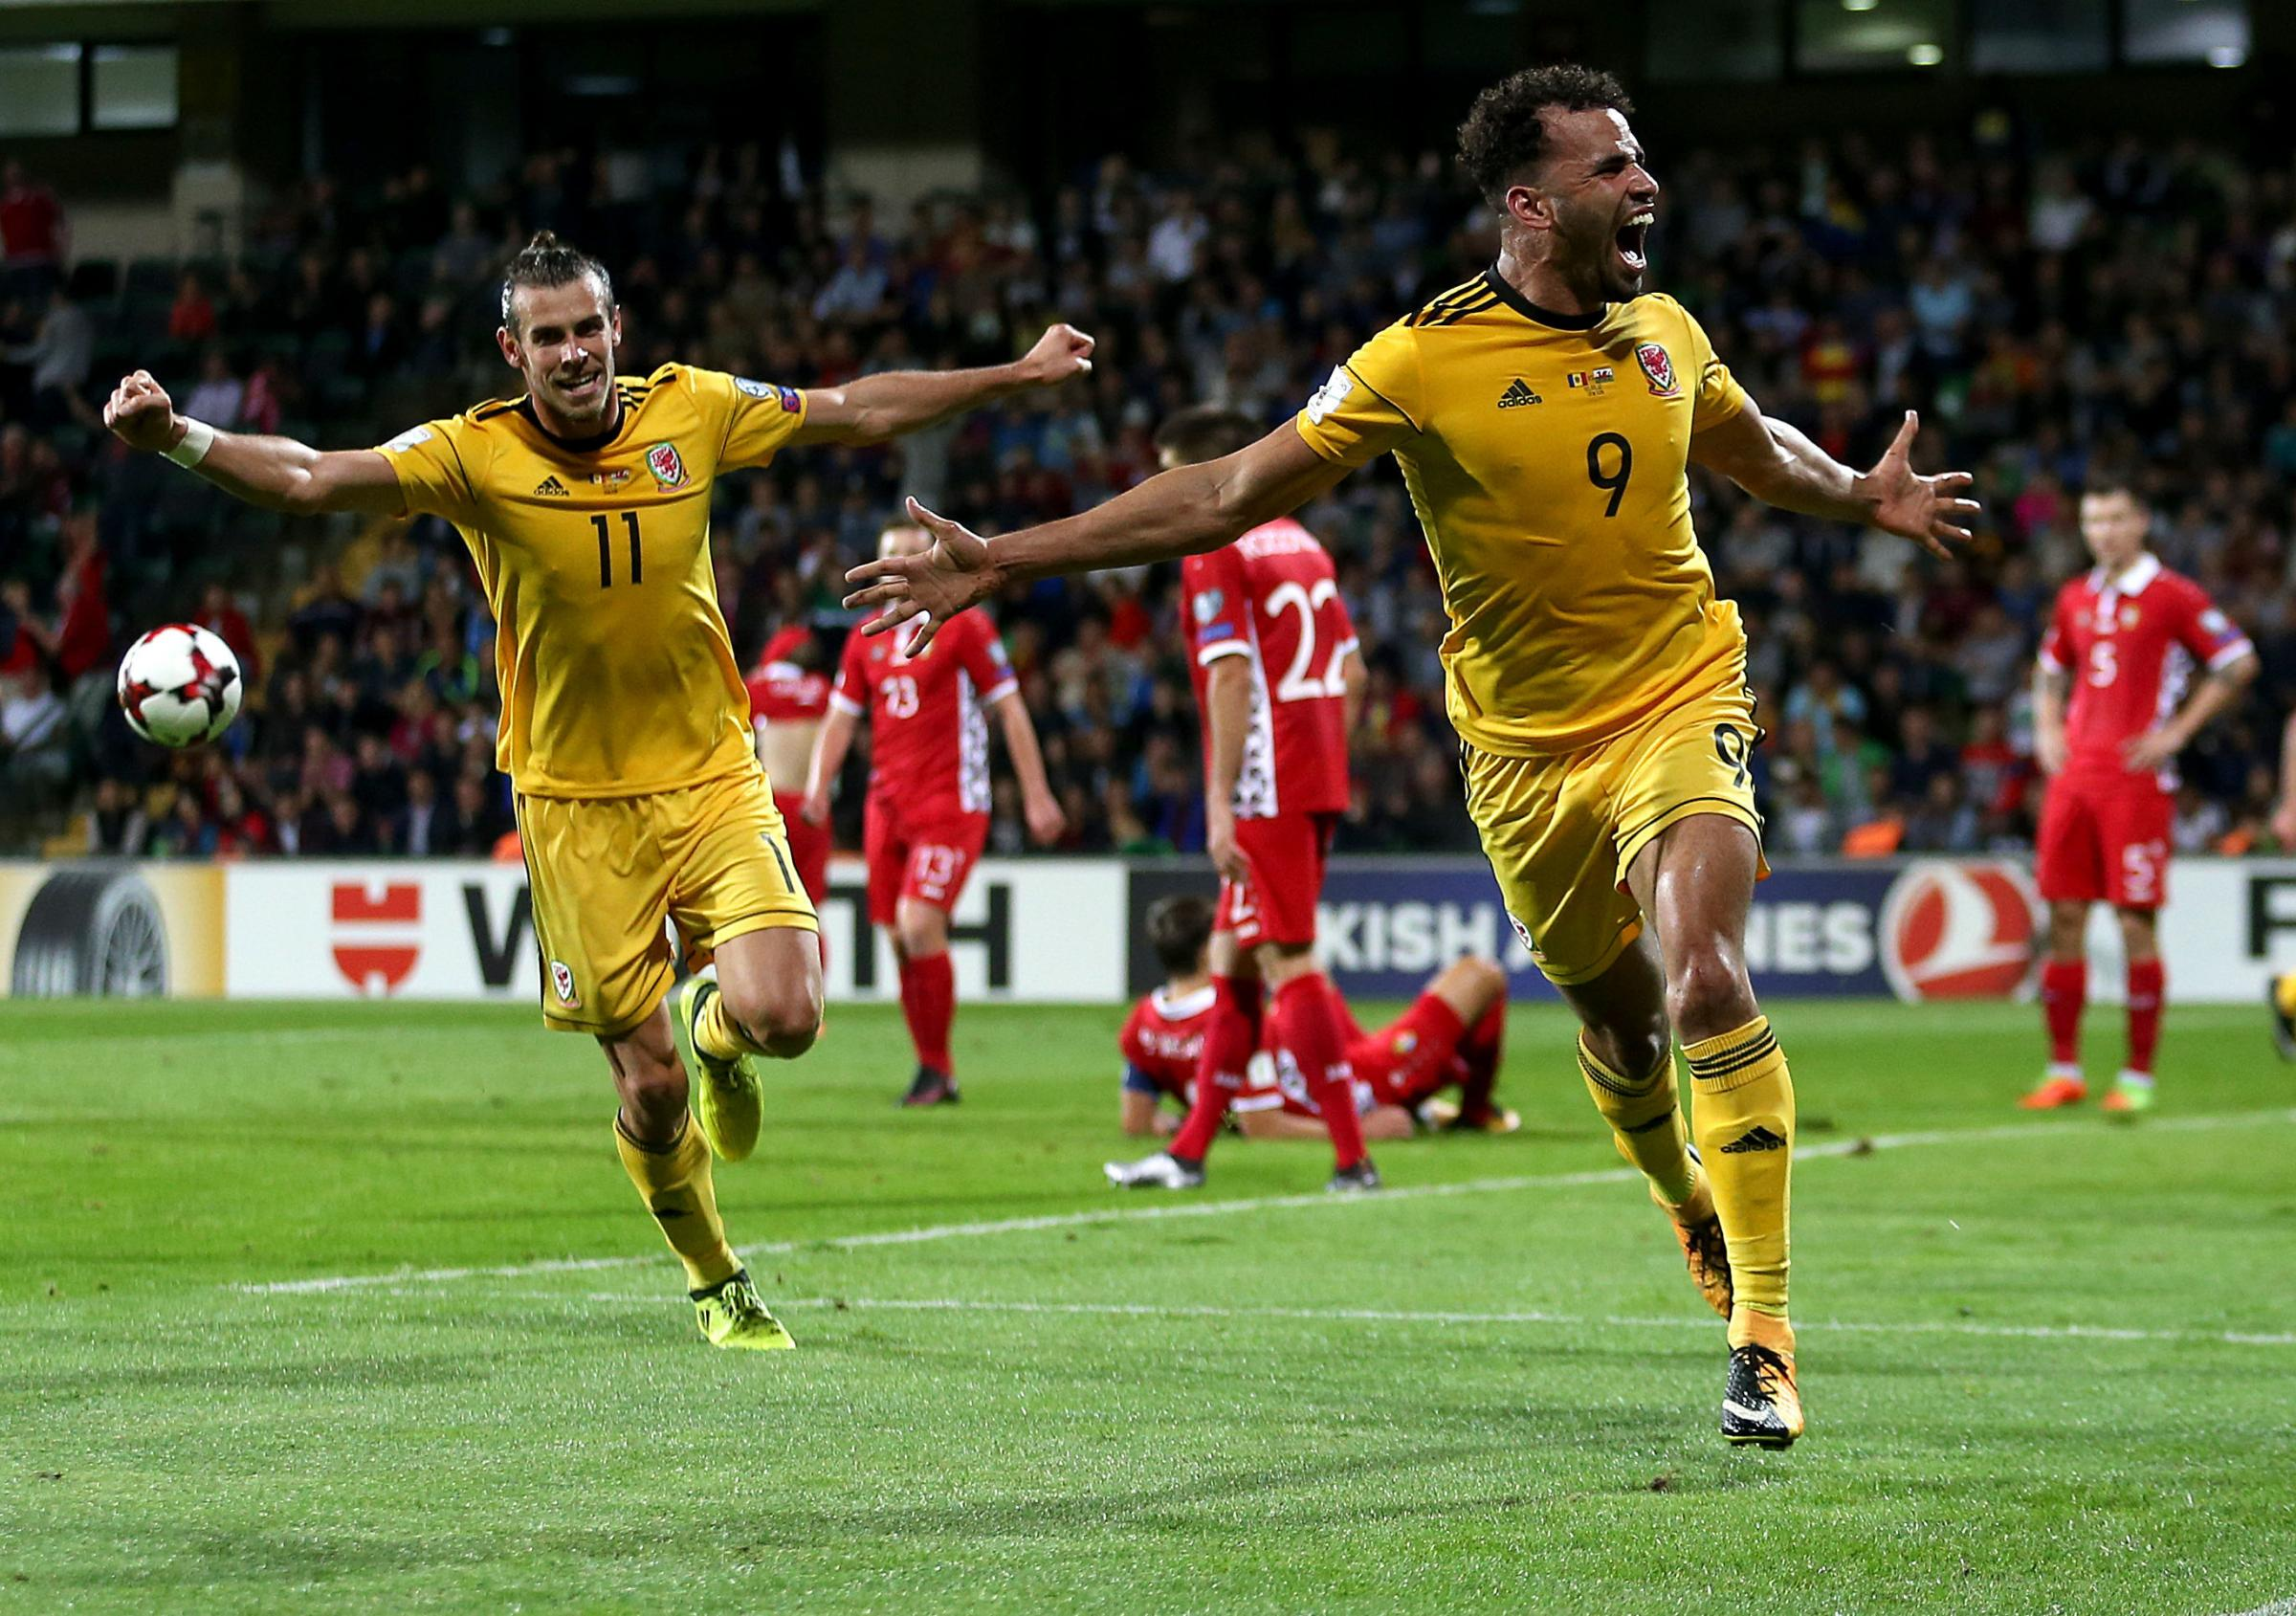 BREAKTHROUGH: Wales striker Hal Robson-Kanu, right, celebrates his goal in Moldova